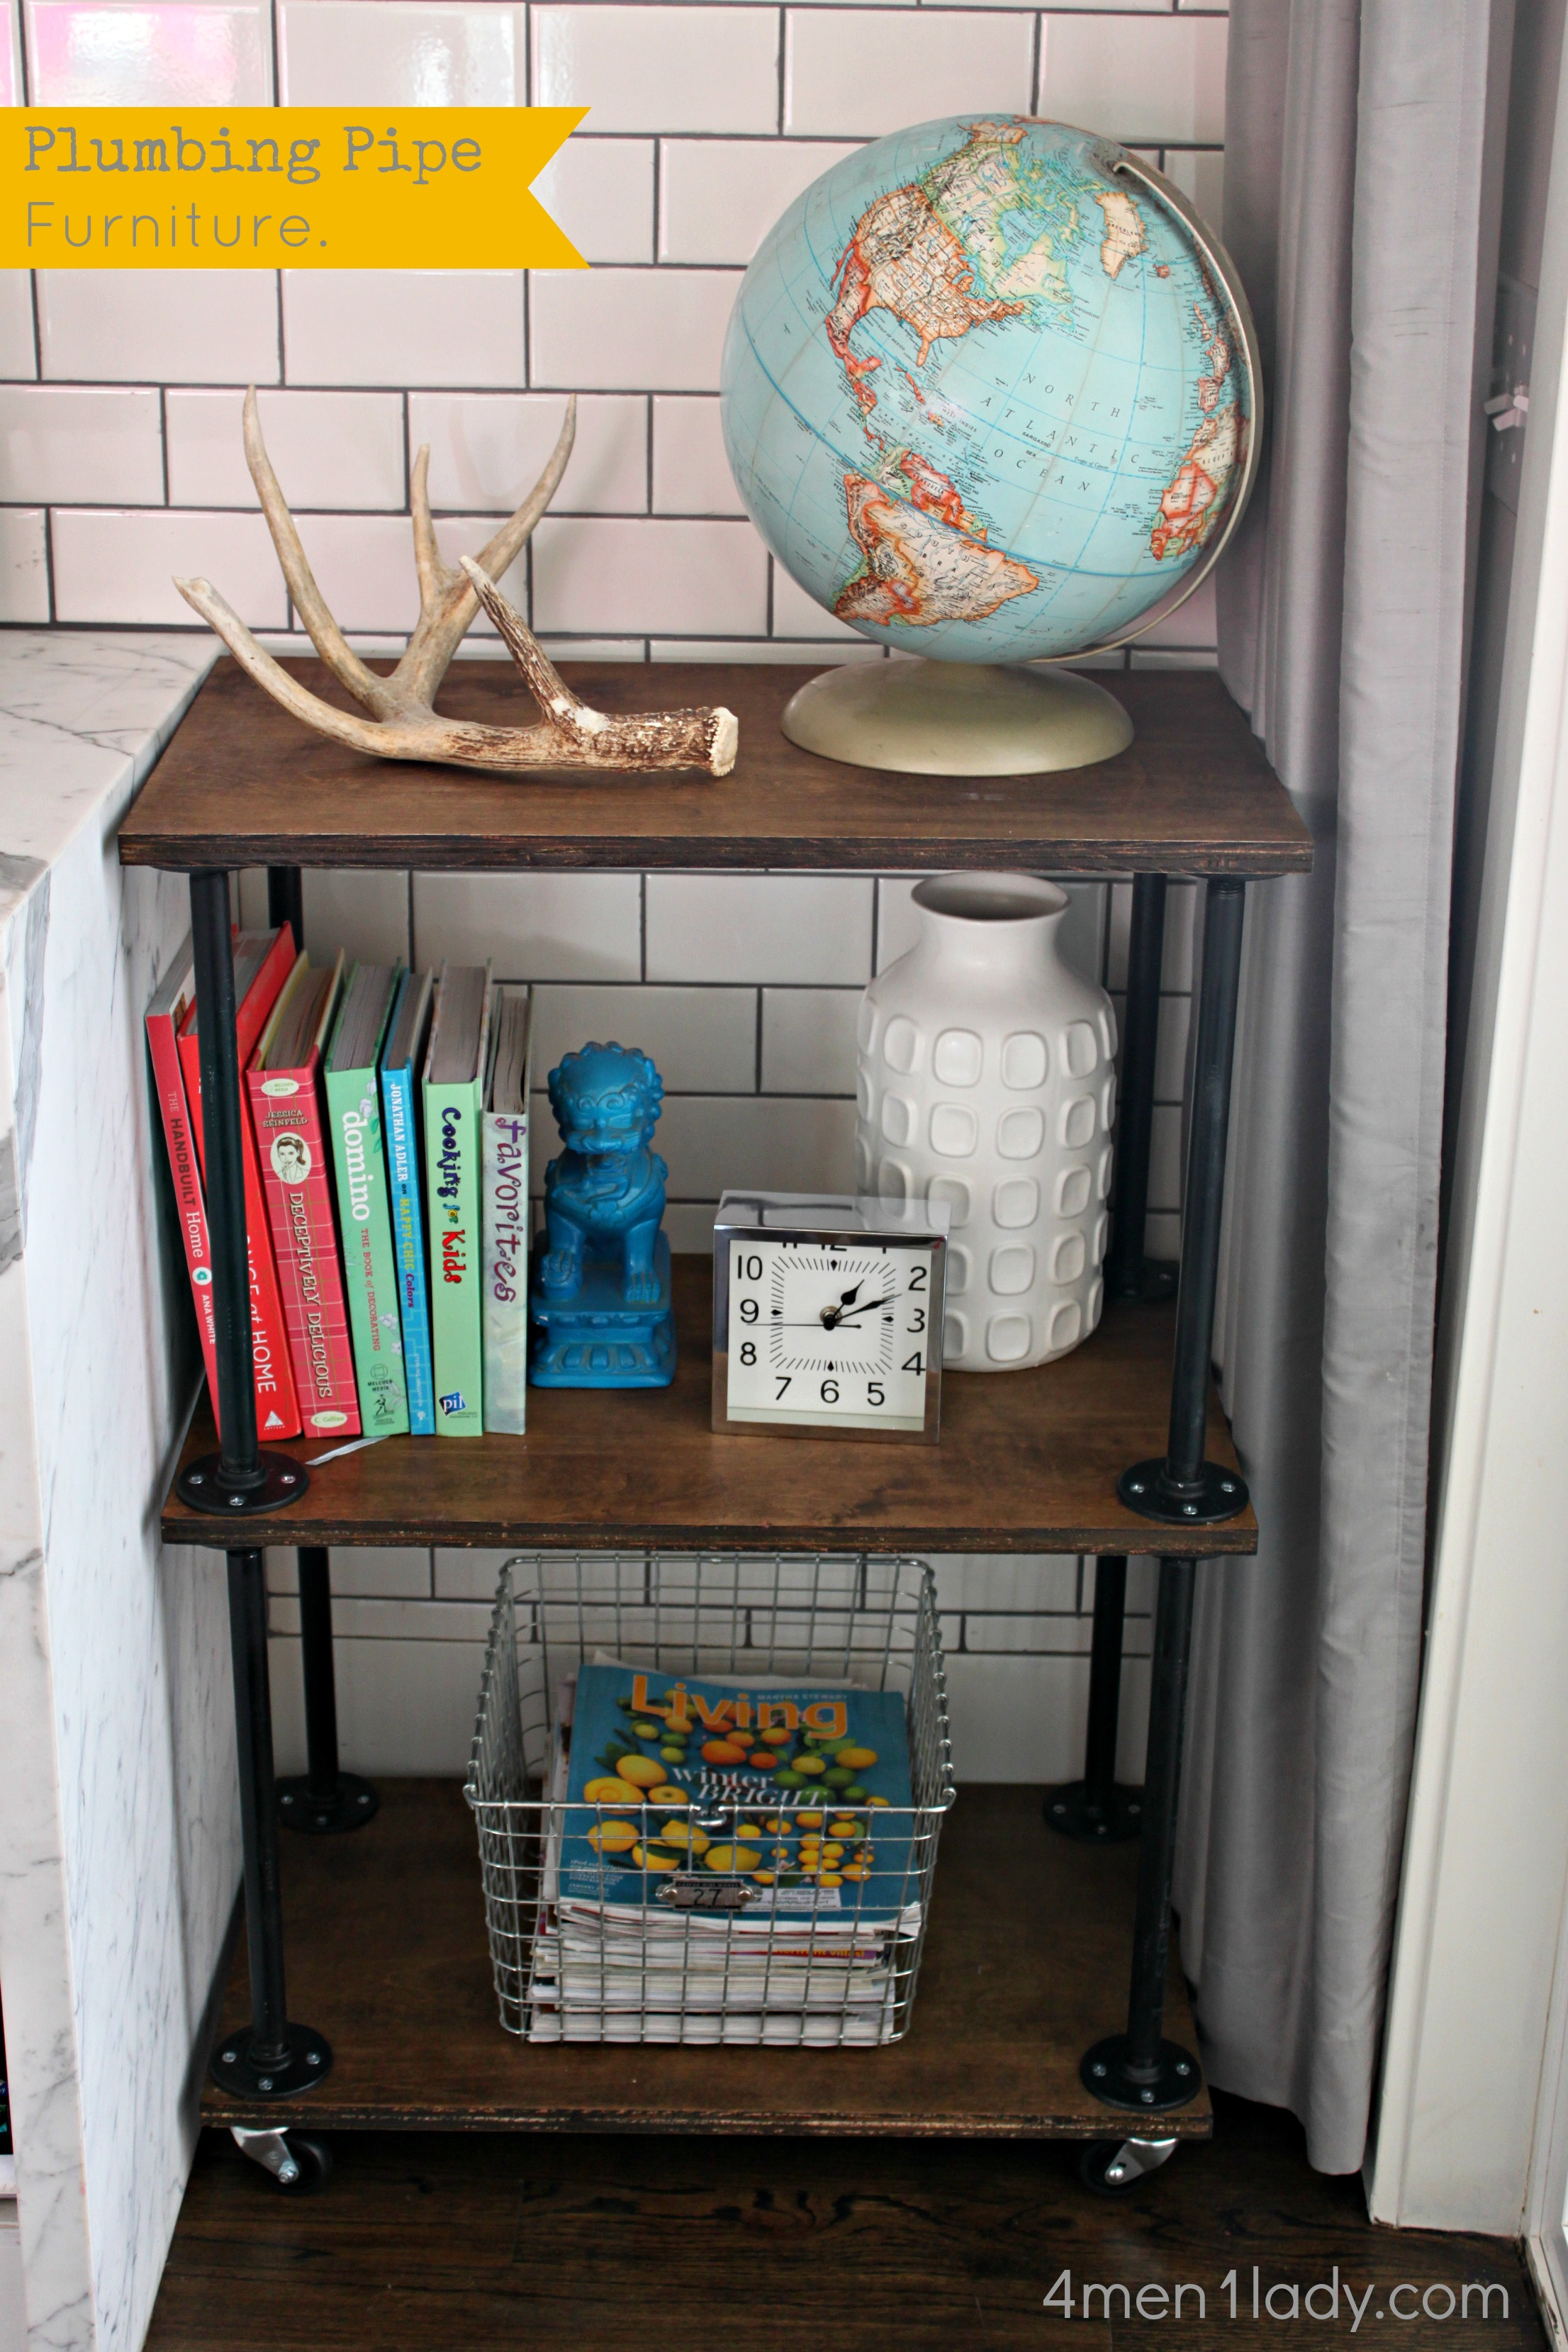 love the industrial look to it plus when you do it yourself, you can